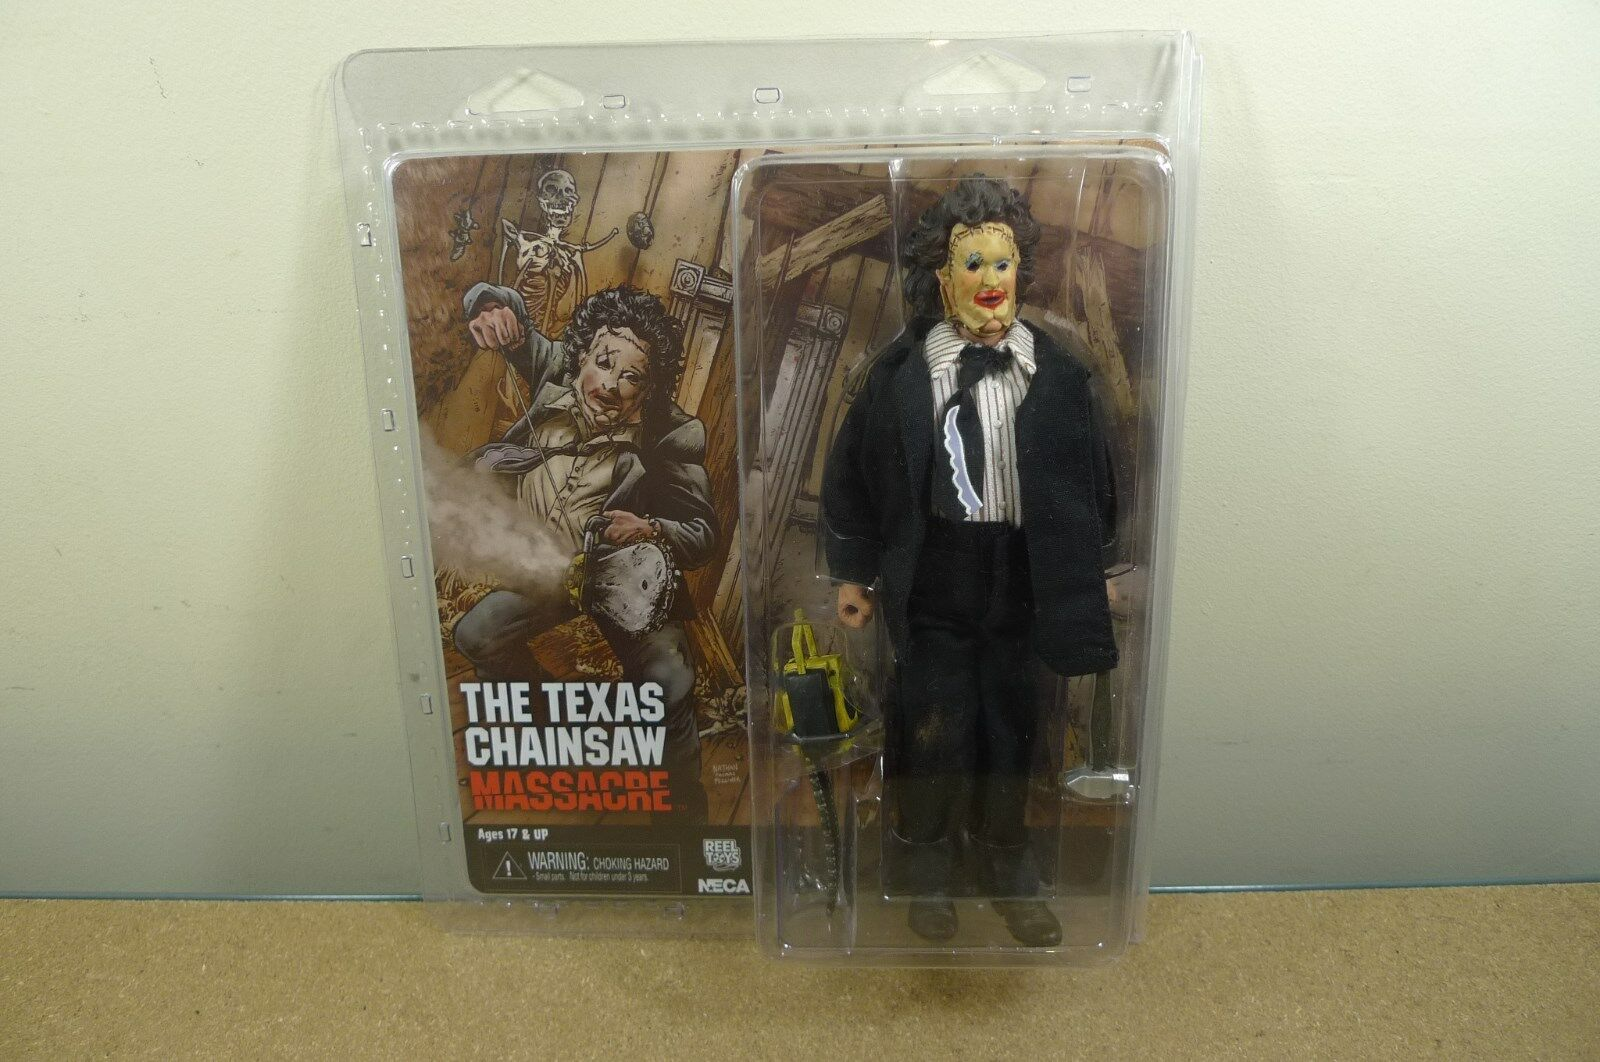 NECA Texas Chainsaw Massacre quella Bella Ragazza Ragazza Ragazza Vestito Action Figure 728418